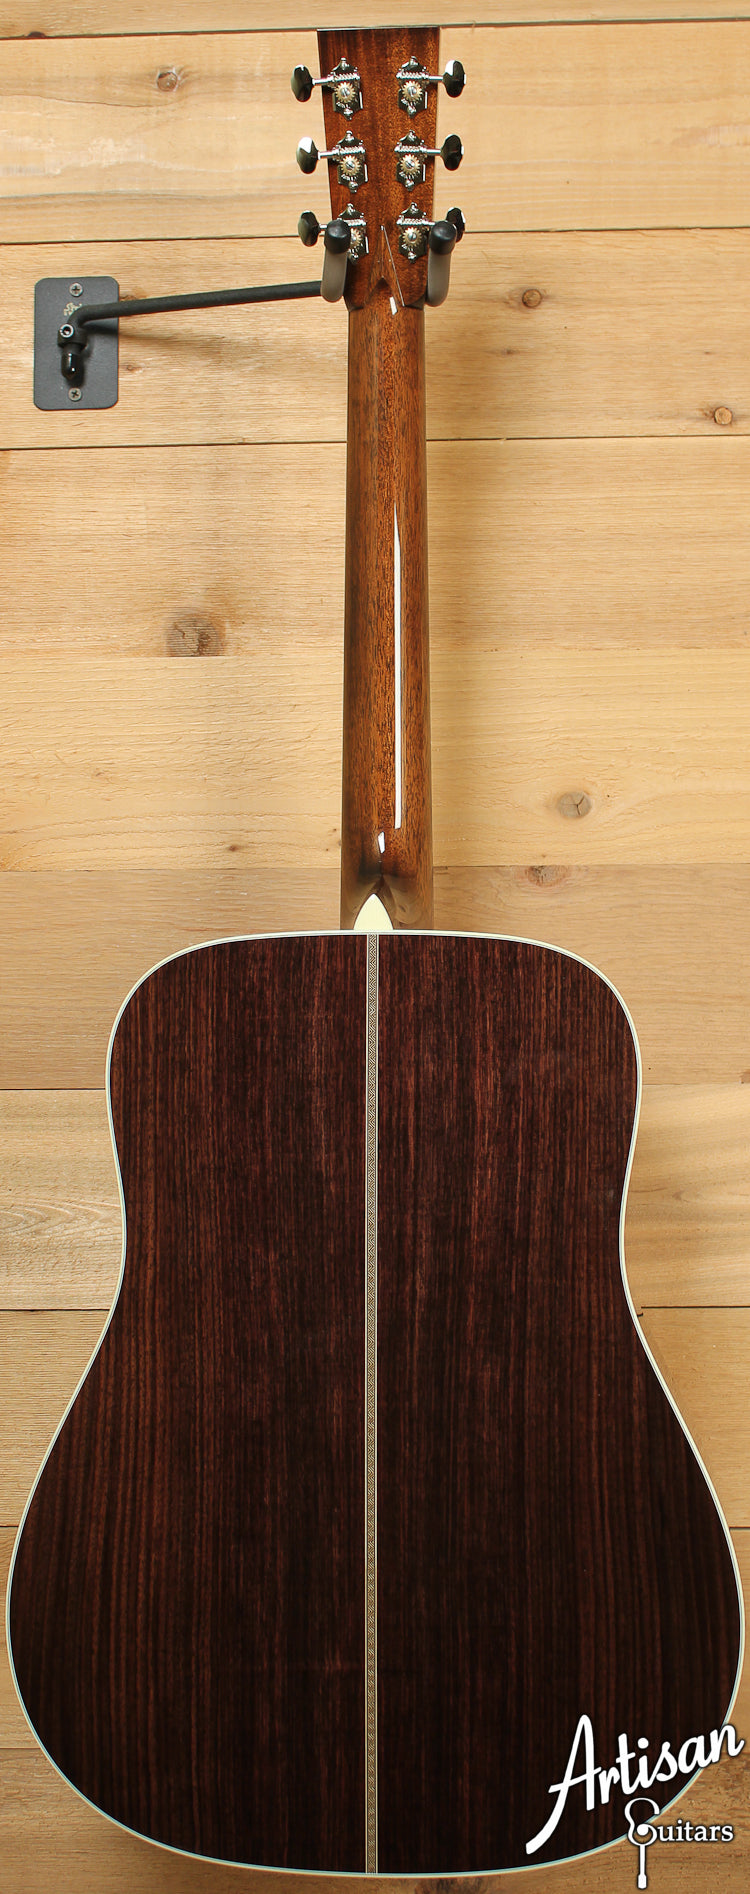 Pre Owned 2013 Collings D2H Sb Sitka Spruce and Indian Rosewood with Sunburst Top ID-7237 - Artisan Guitars